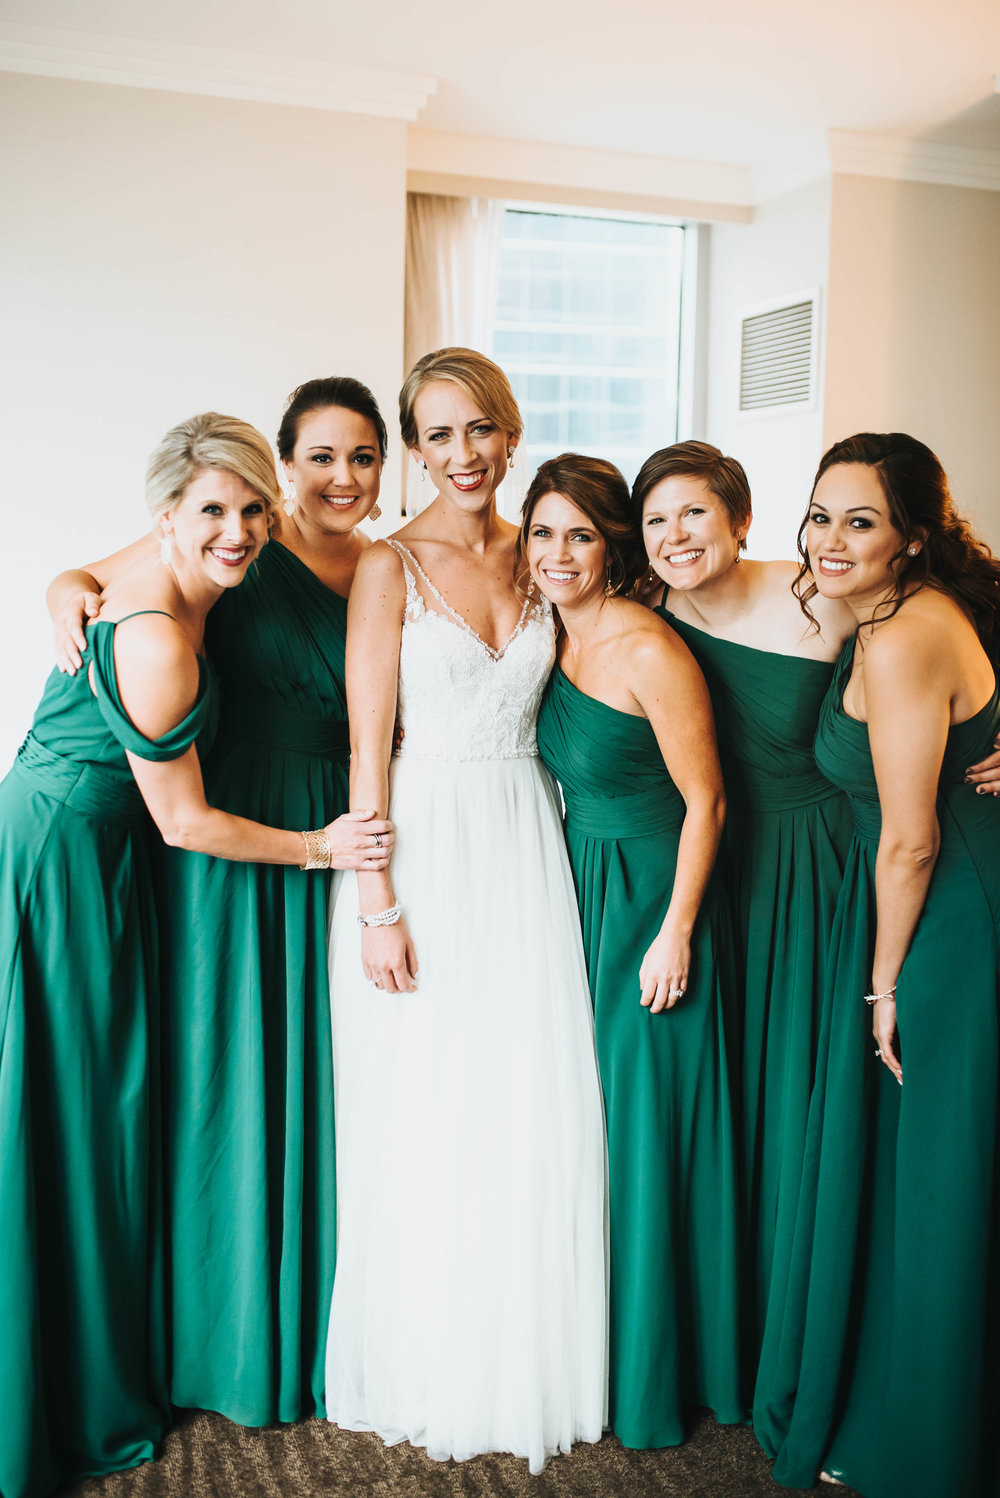 atlanta georgia midtown modern timeless nontraditional wedding photographer-159.jpg